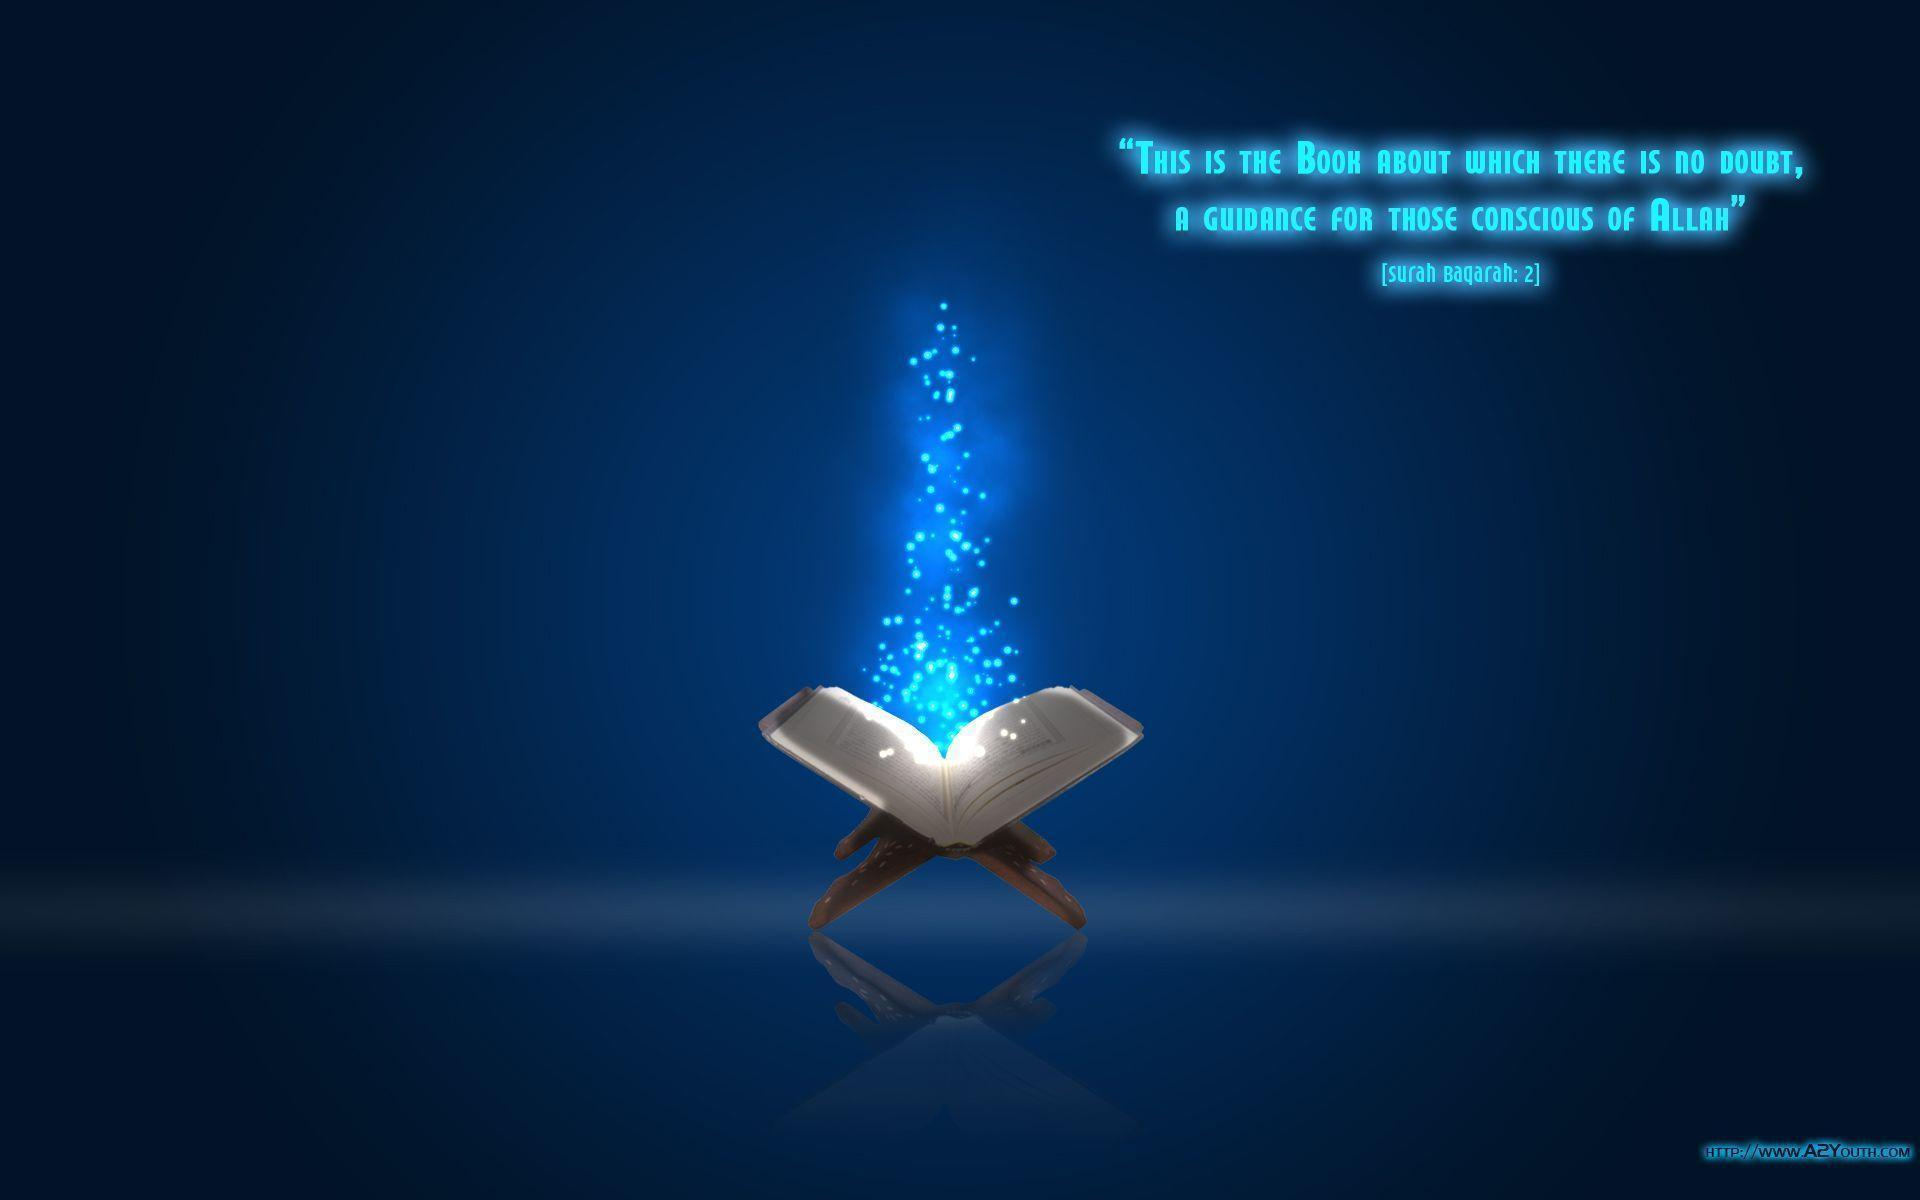 Book of No Doubt - Quran - Islamic Wallpapers - A2Youth.